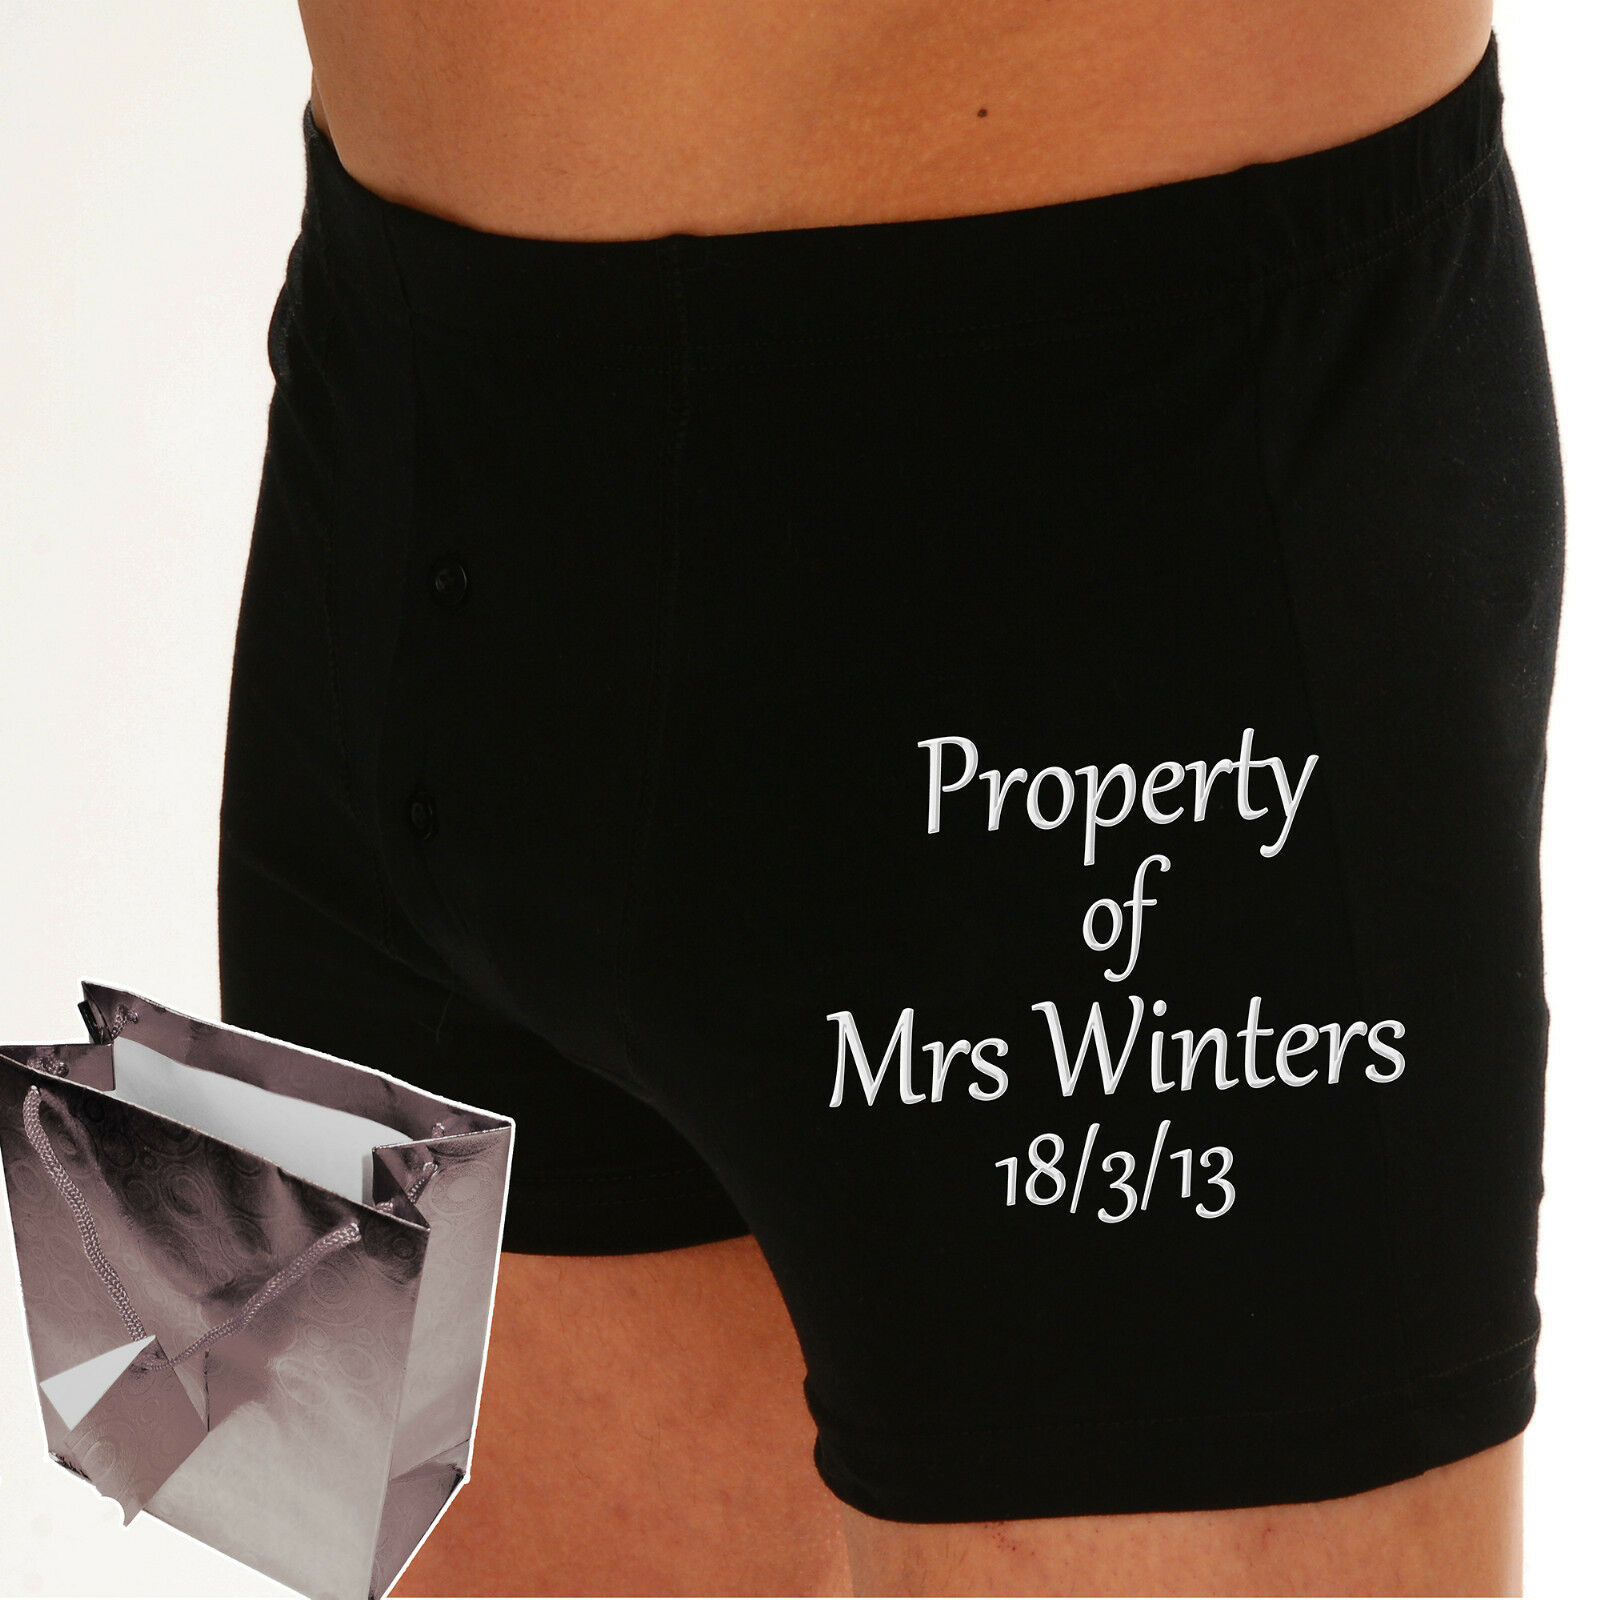 PERSONALISED Boxer shorts PROPERTY OF Cotton Wedding Anniversary 2nd Groom gift